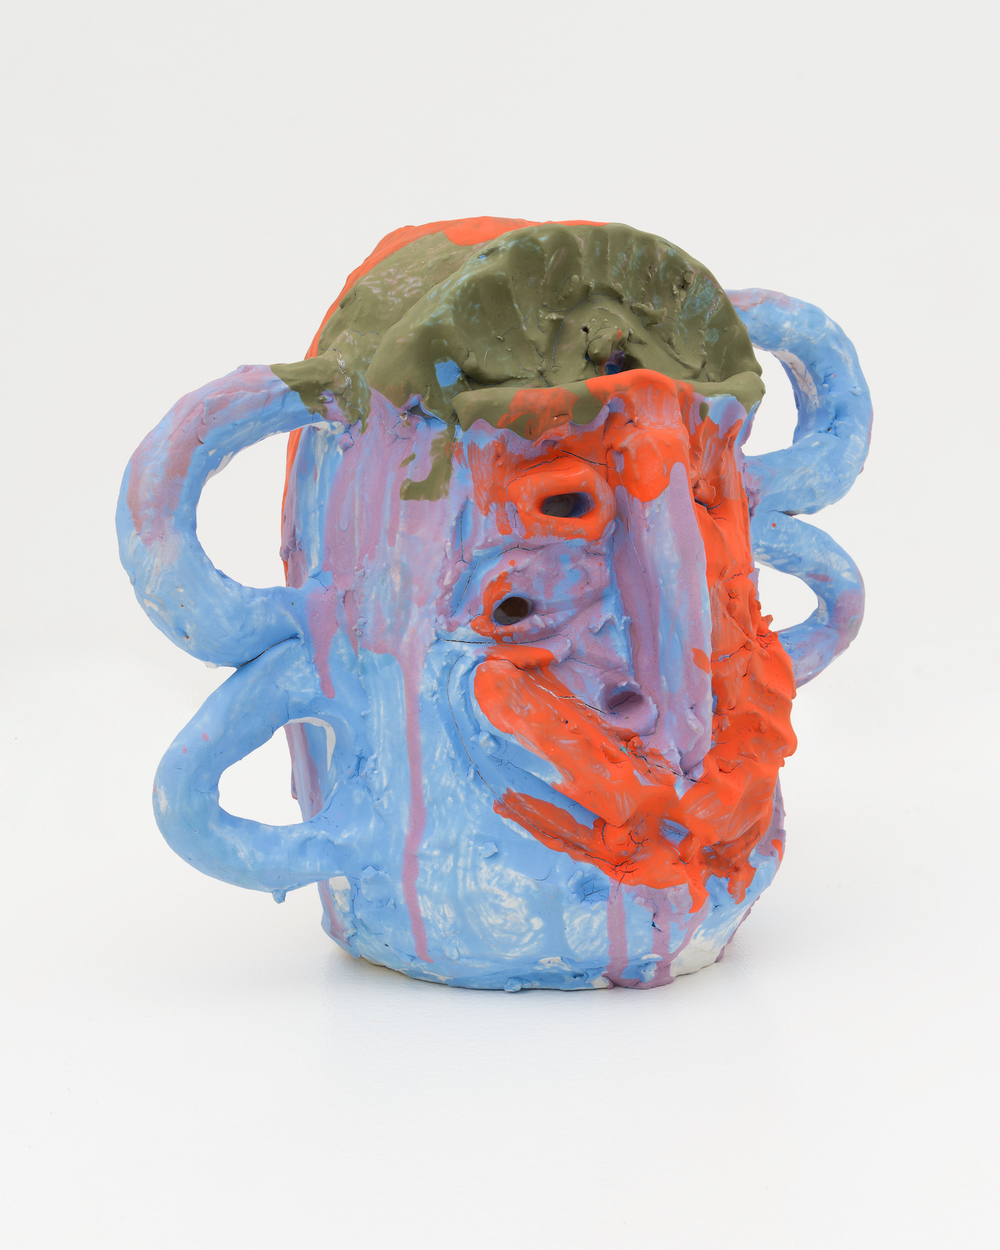 "William J. O'Brien Untitled 2015 Glazed ceramic 11"" x 13"" x 8"" WOB1005"